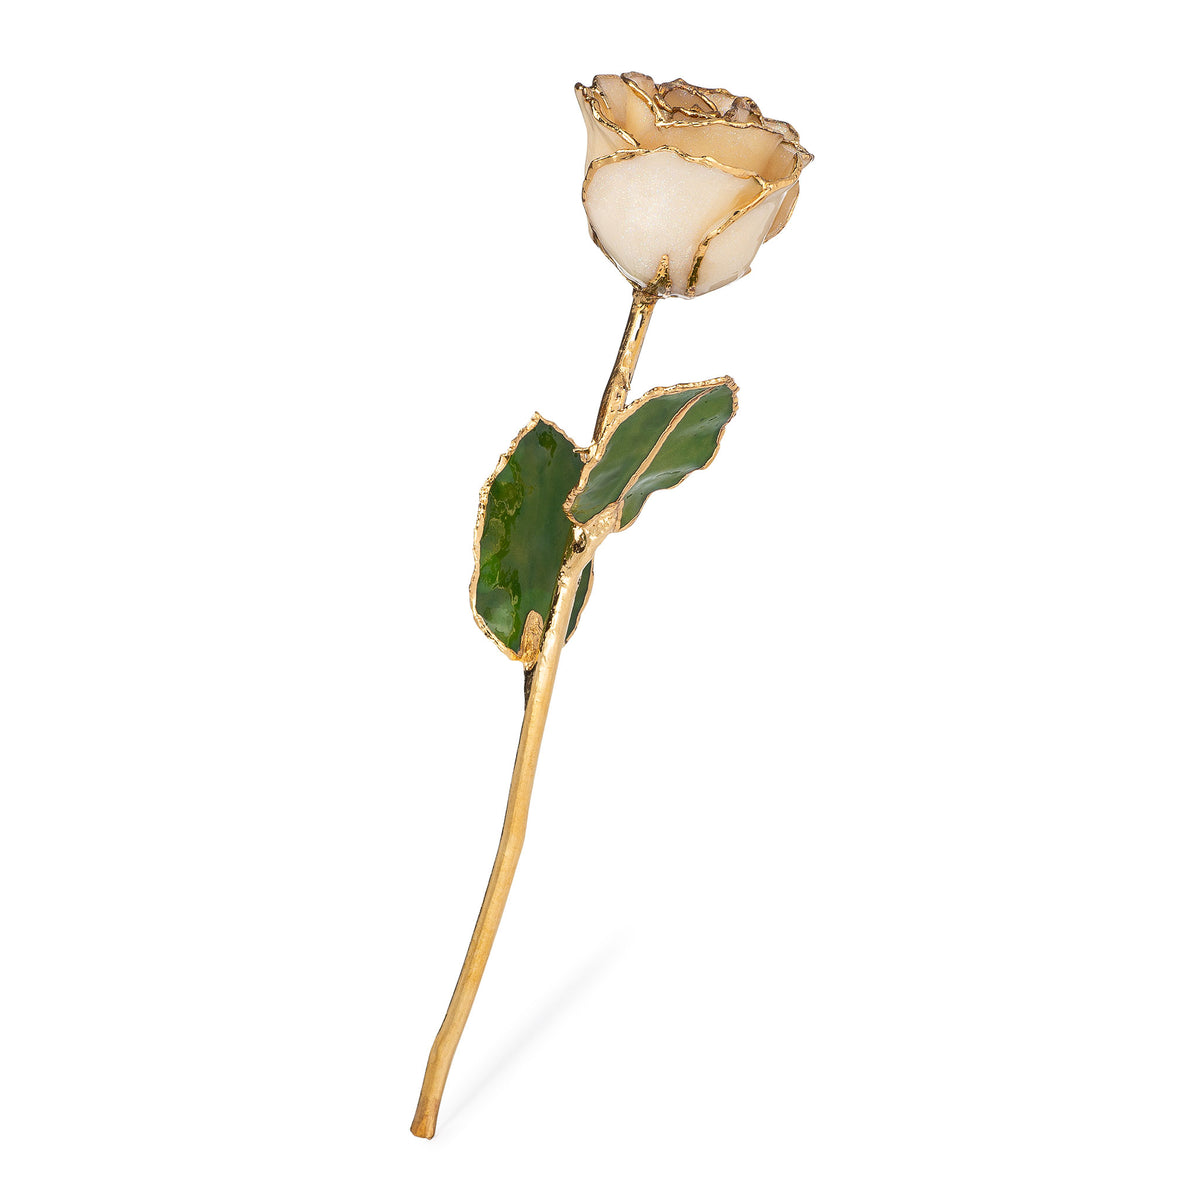 24K Gold Trimmed Forever Rose with Diamond Petals with Sparkles. View of Stem, Leaves, and Rose Petals and Showing Detail of Gold Trim